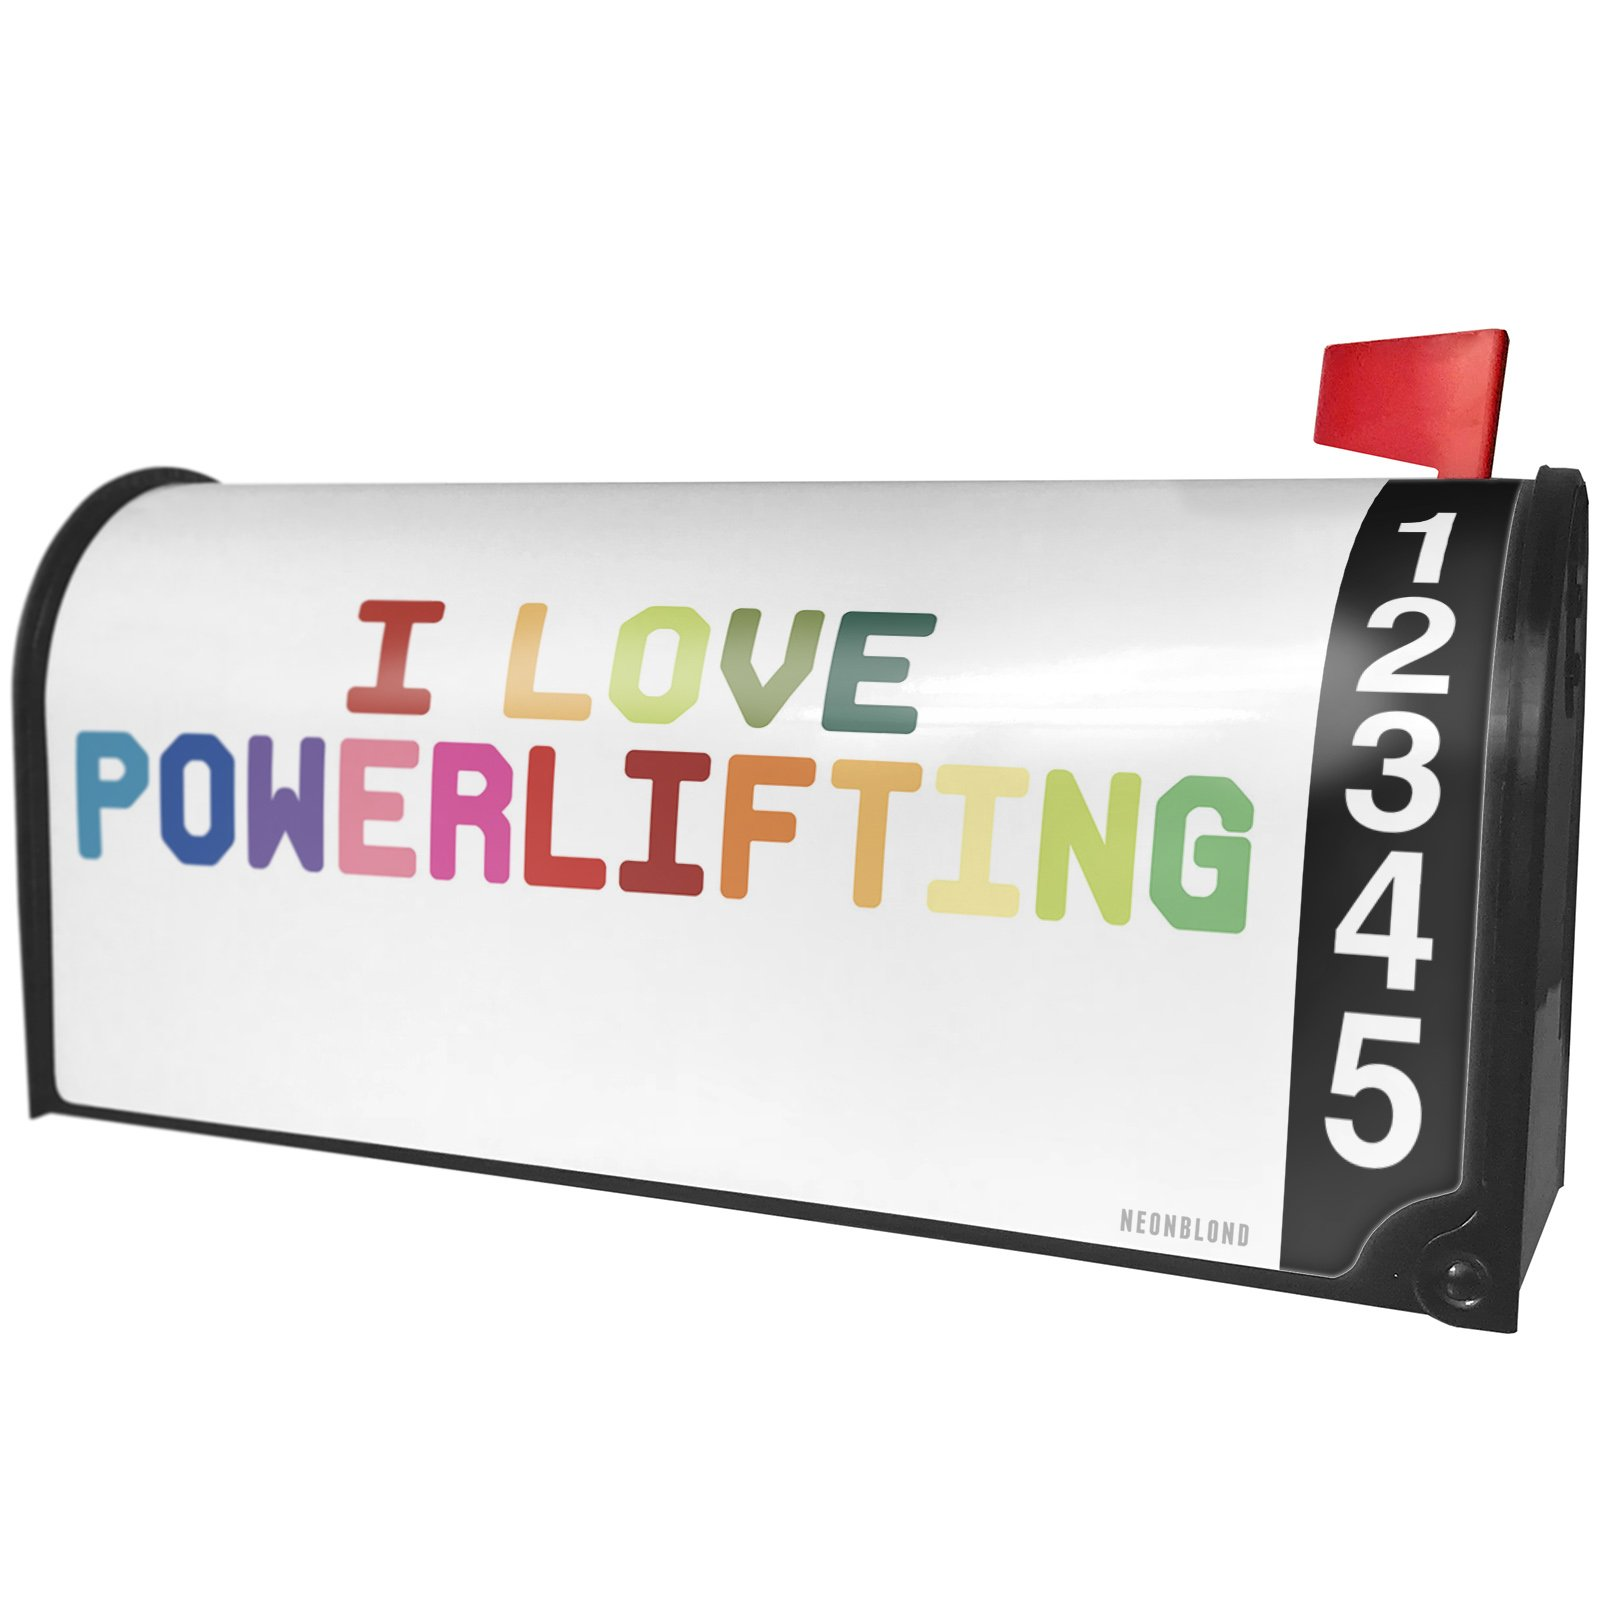 NEONBLOND I Love Powerlifting,Colorful Magnetic Mailbox Cover Custom Numbers